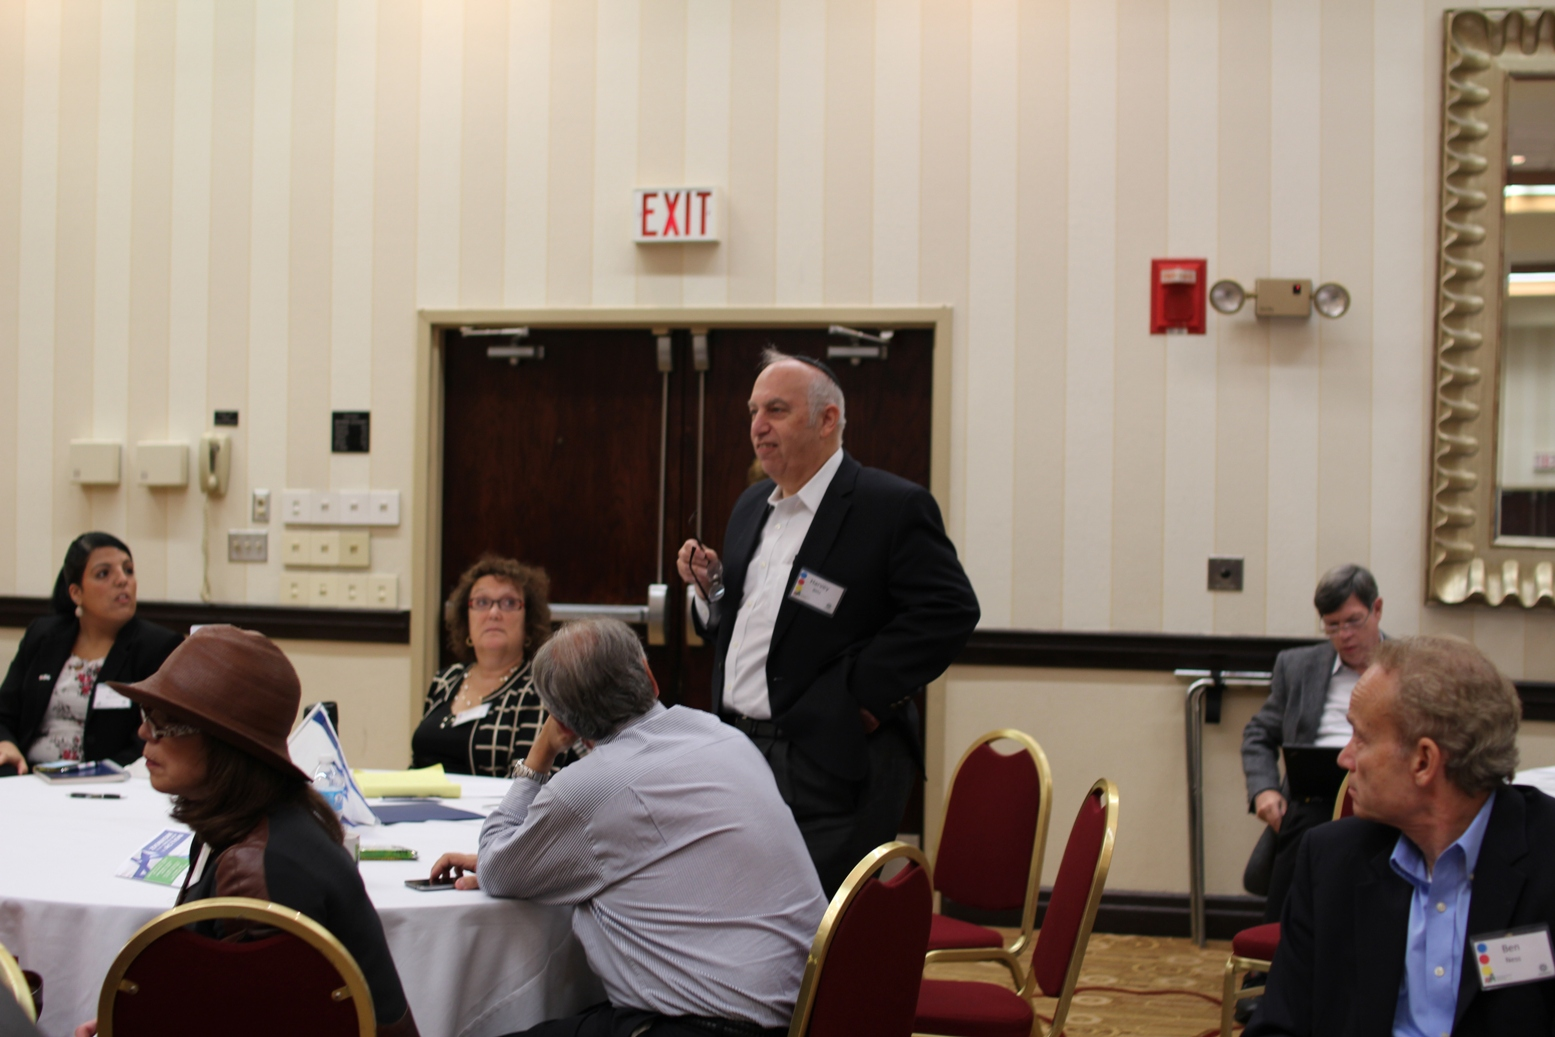 AZM Board Member Harvey Blitz asks a question to the panel